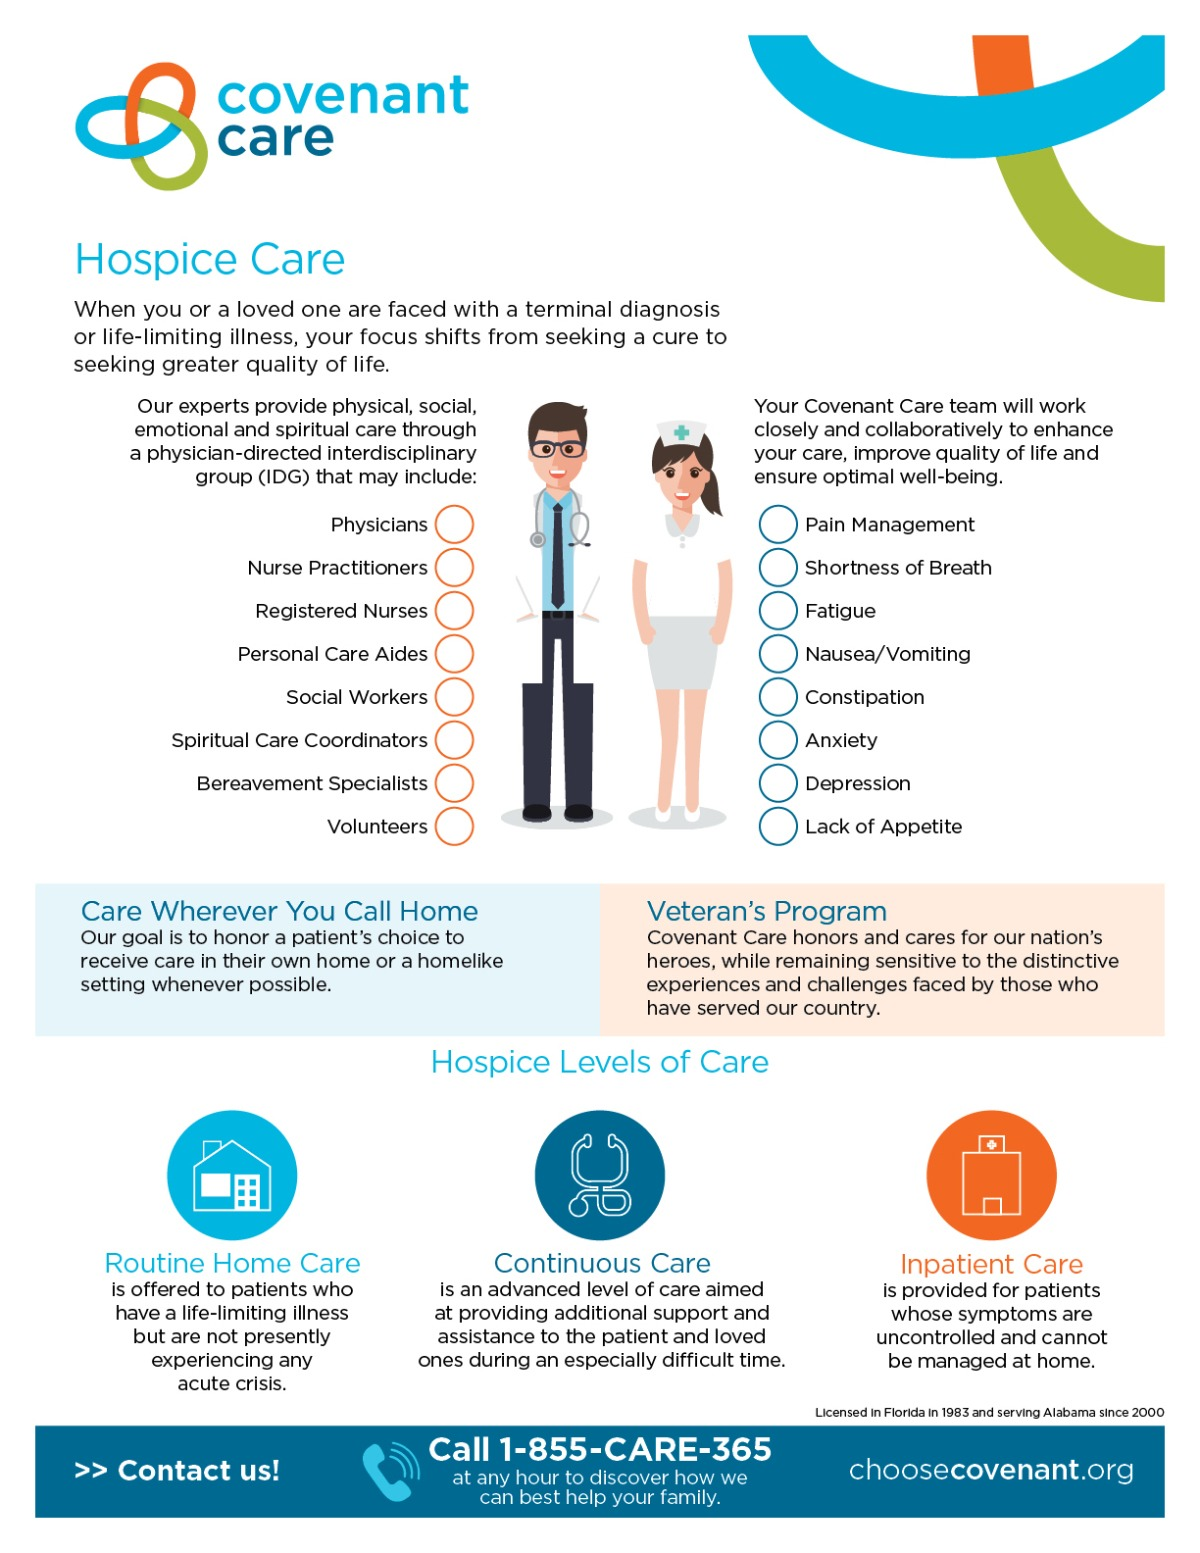 Covenant Care Hospice Care infographic